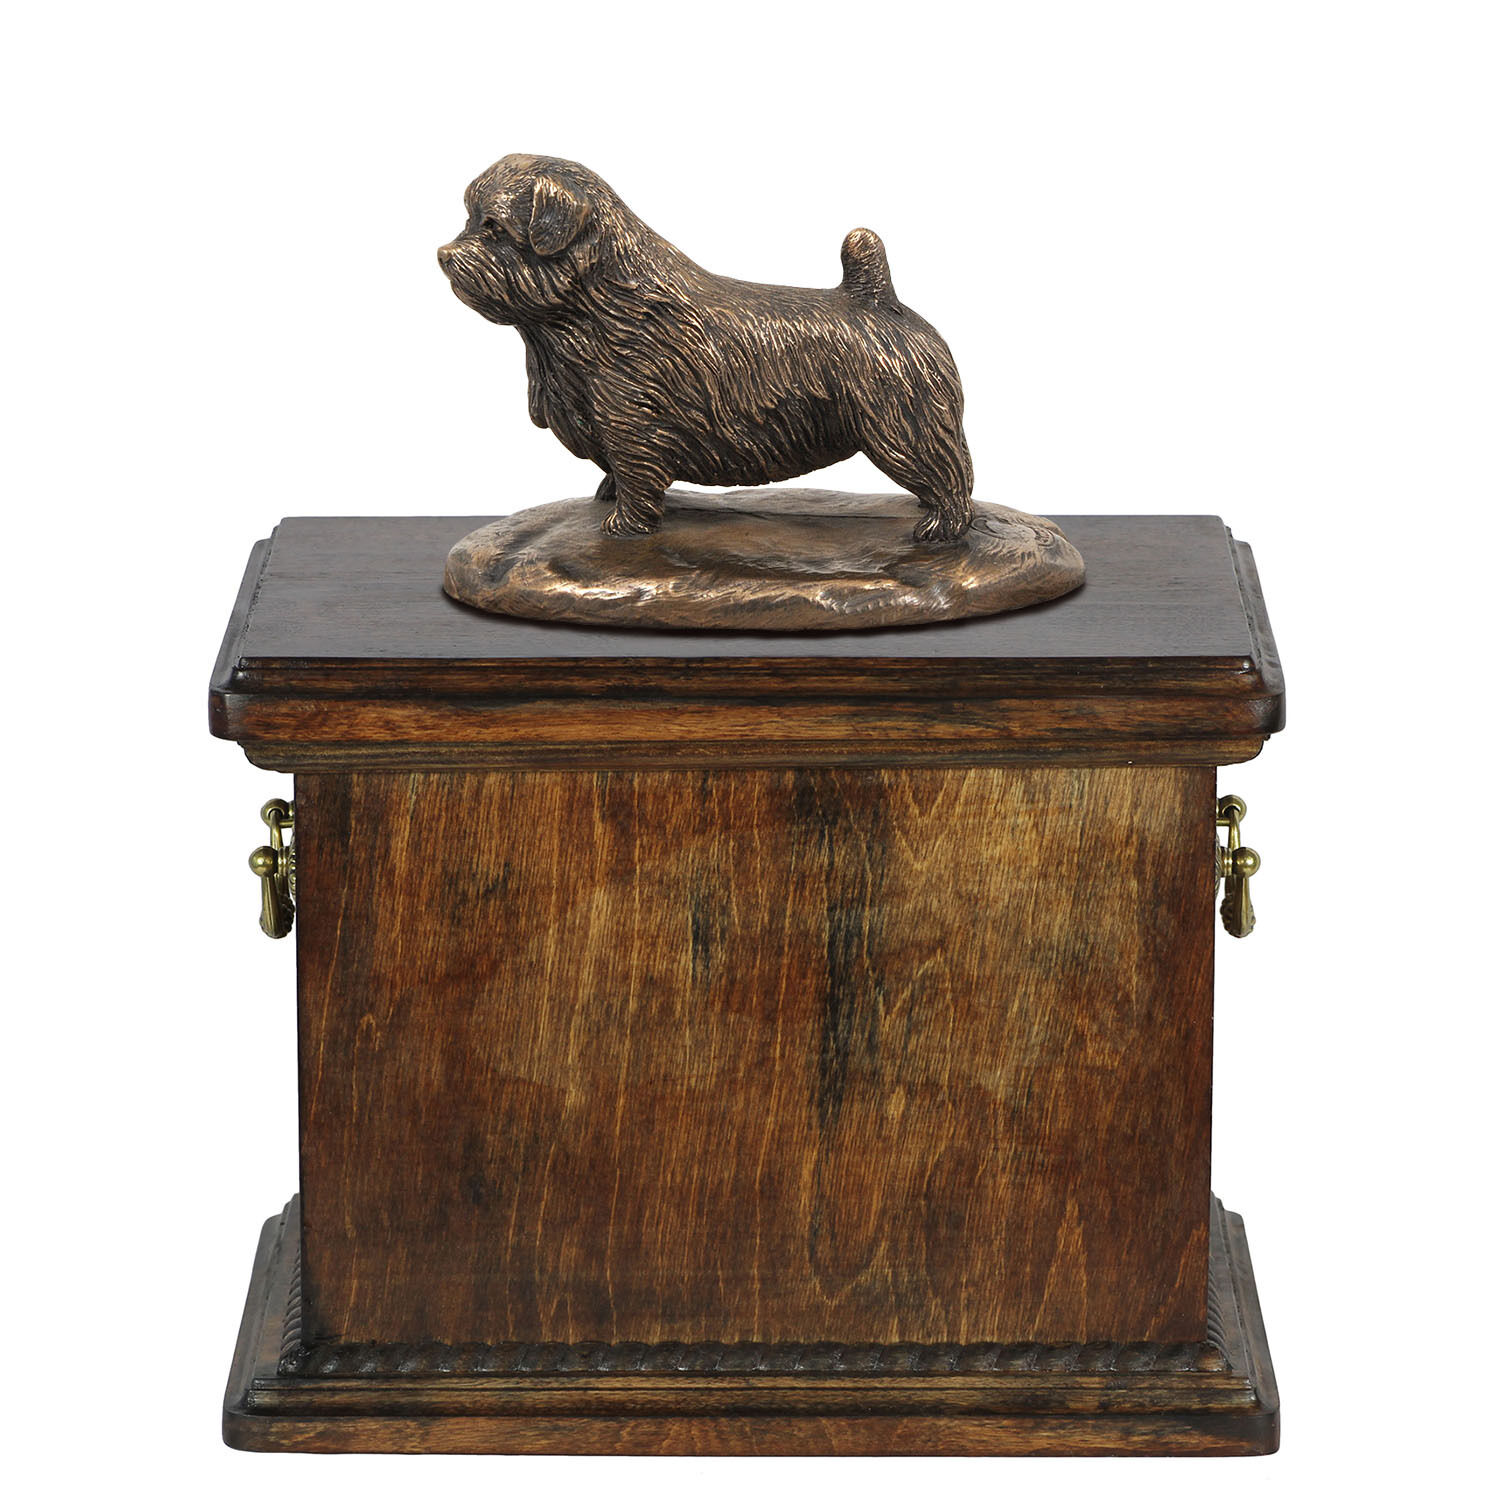 Pet cremation Urn Norfolk Terrier- Memorial Urn for Dog's Dog's Dog's ashes with Dog statue 244cb5